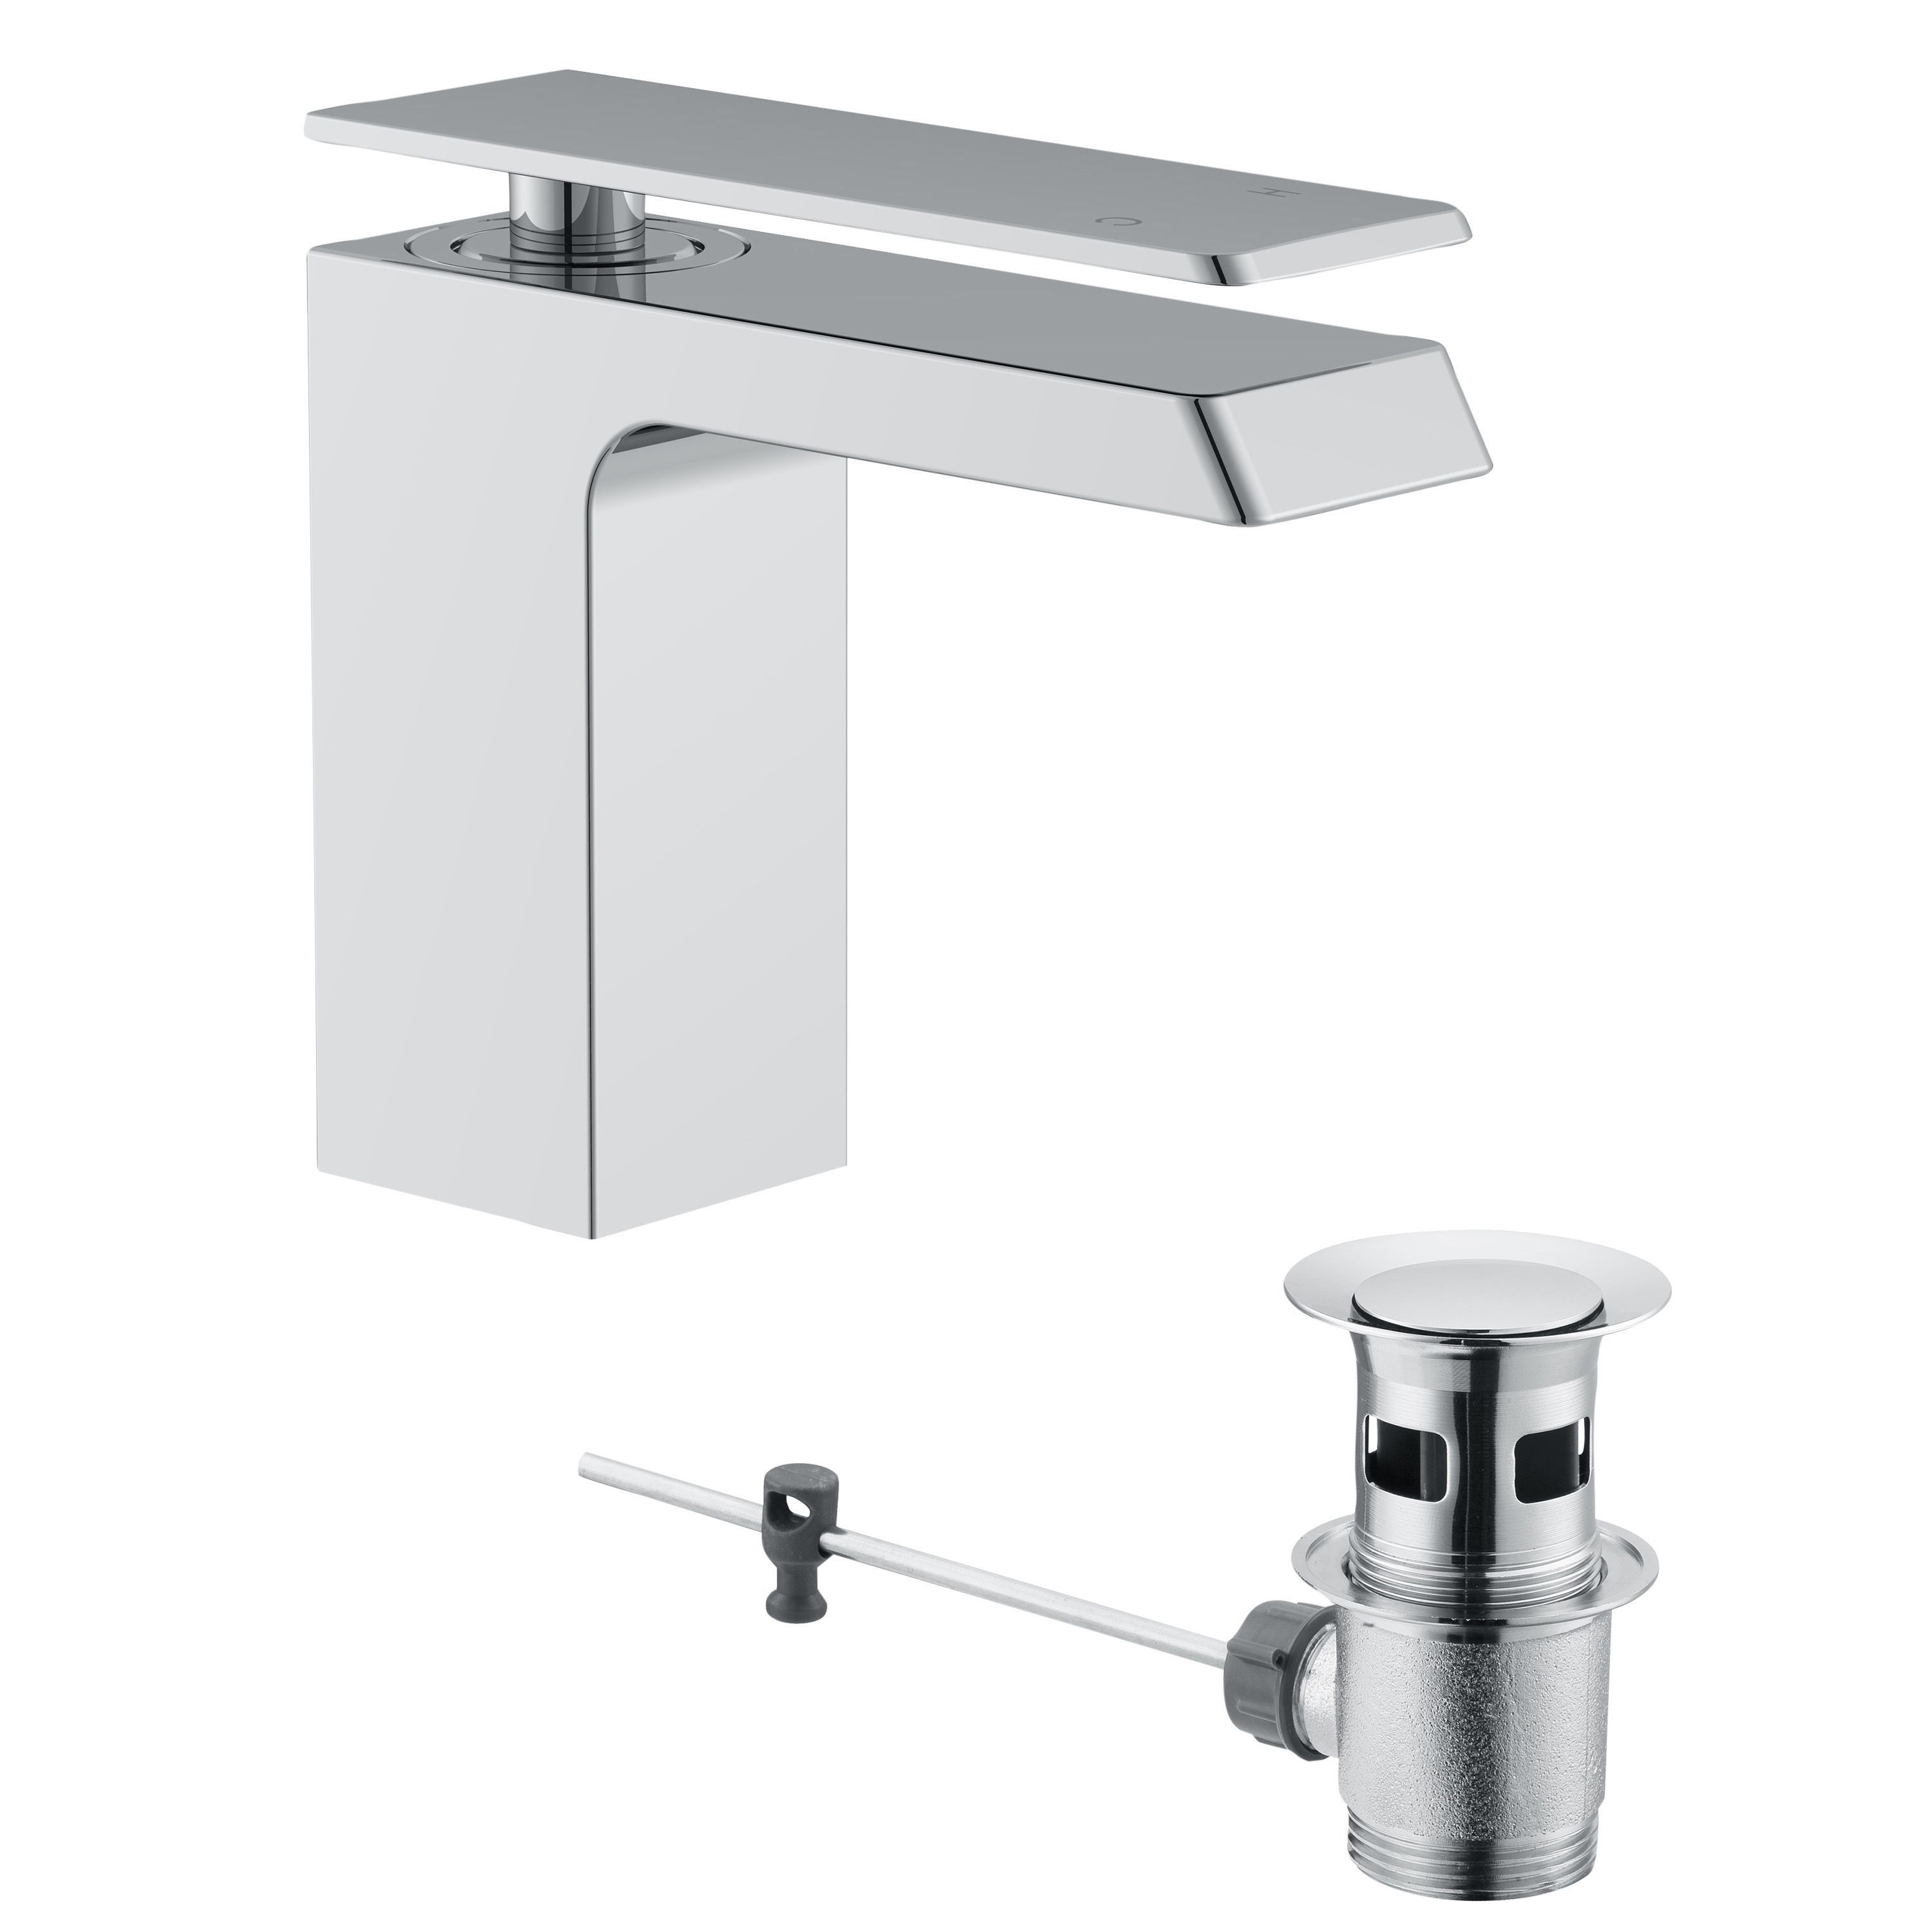 Cooke Lewis Harlyn 1 Lever Basin Mixer Tap Departments Diy At B Q Basin Mixer Taps Basin Mixer Basin